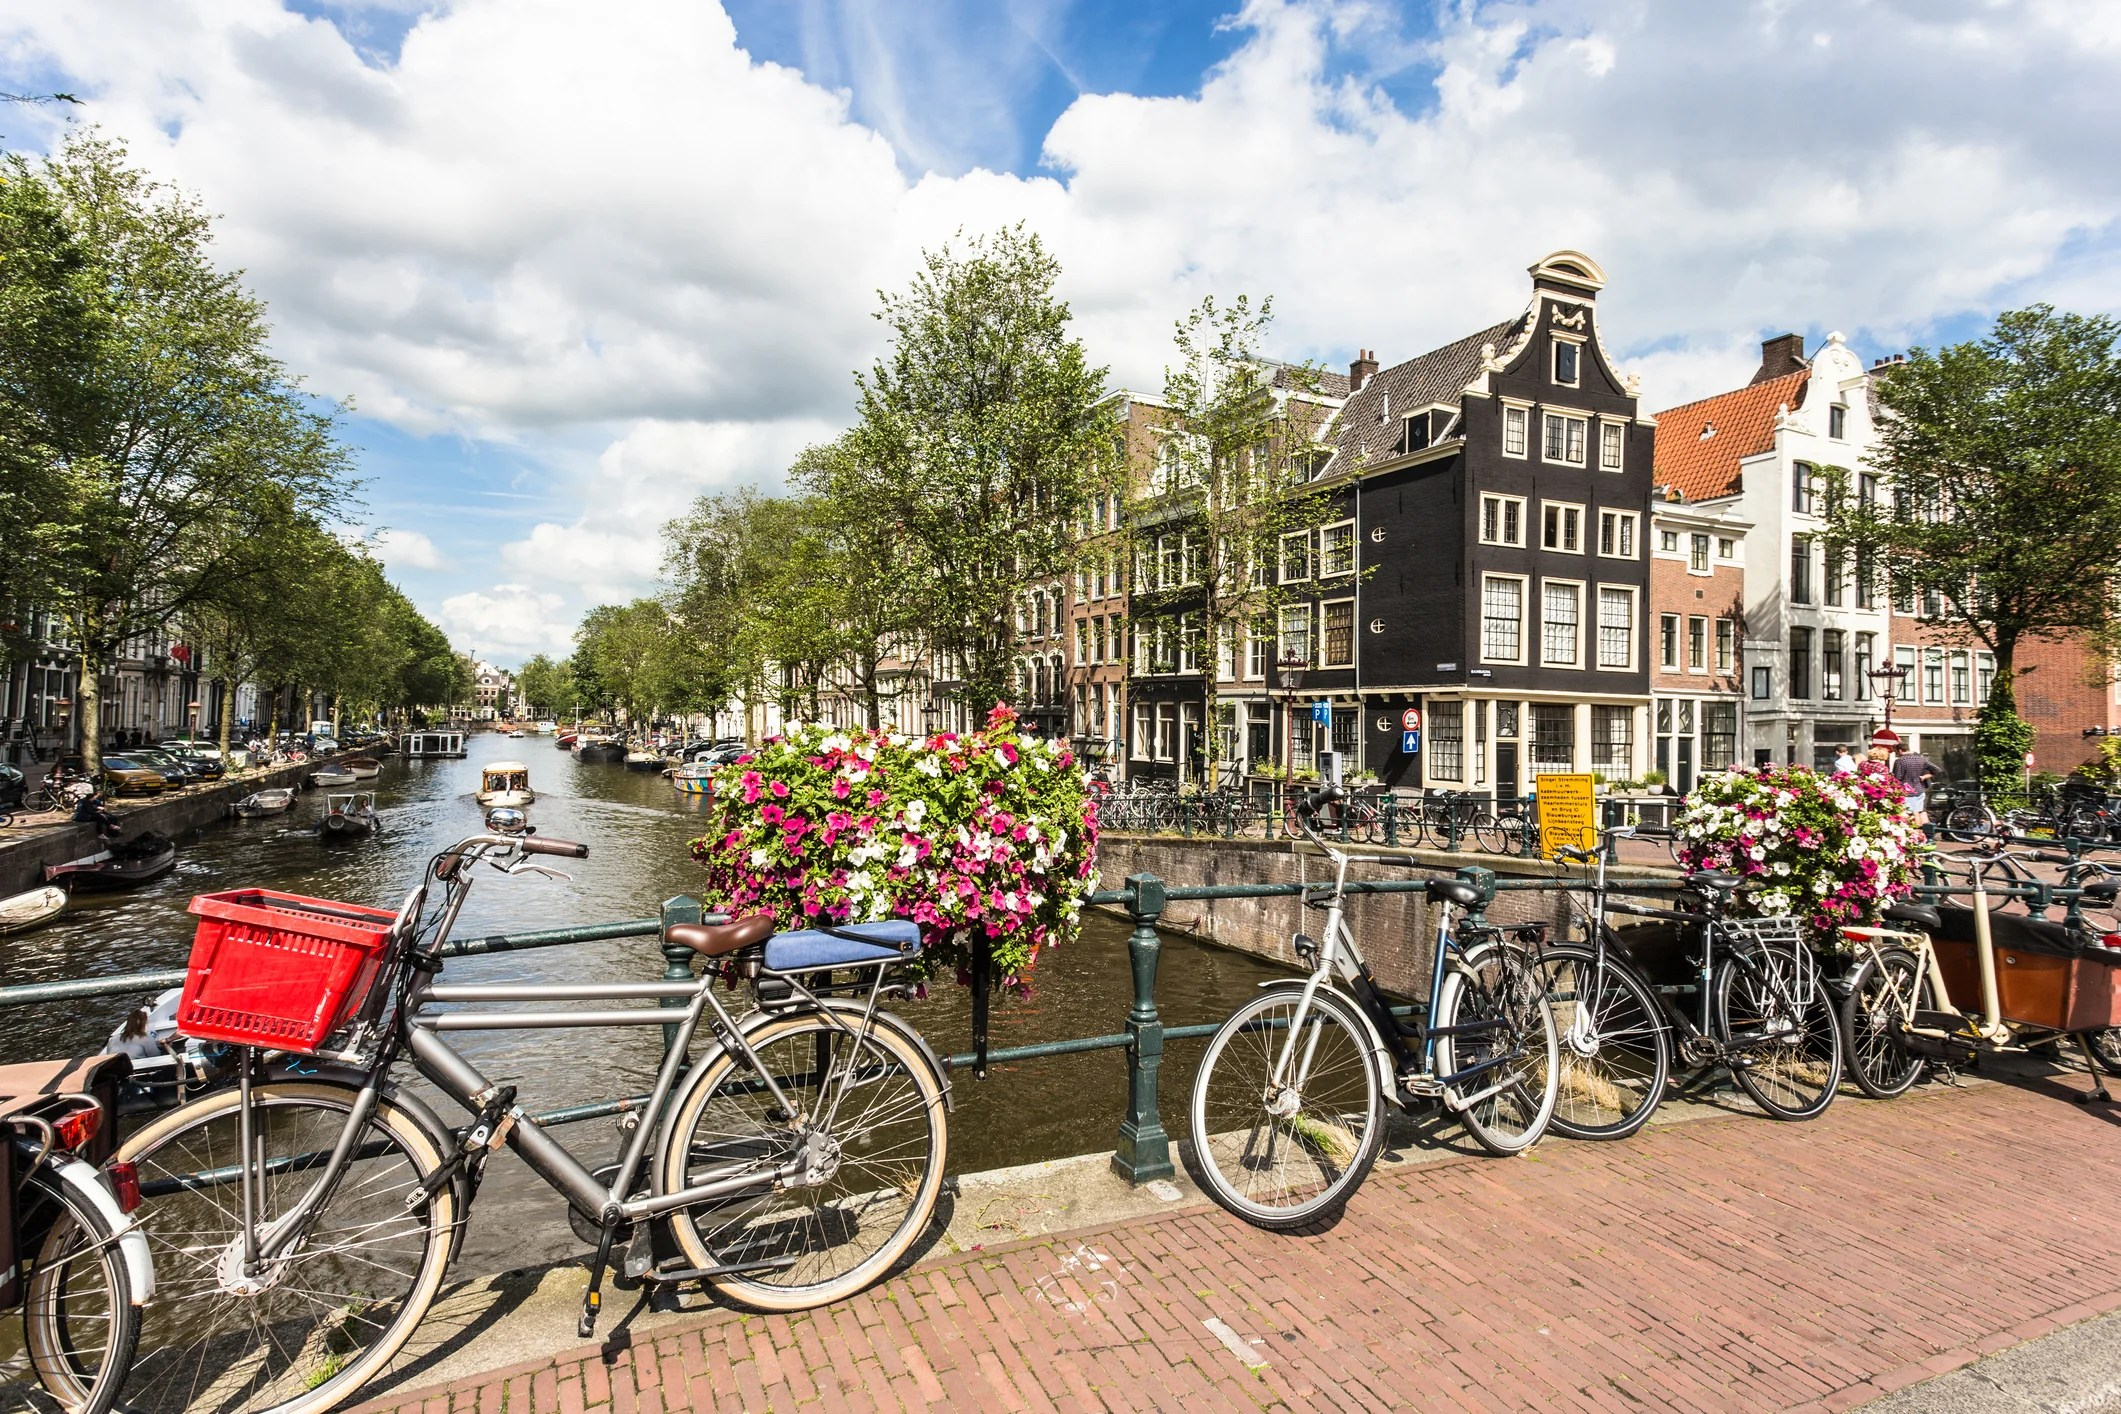 The Netherlands Pays Residents to Ride Their Bikes To Work